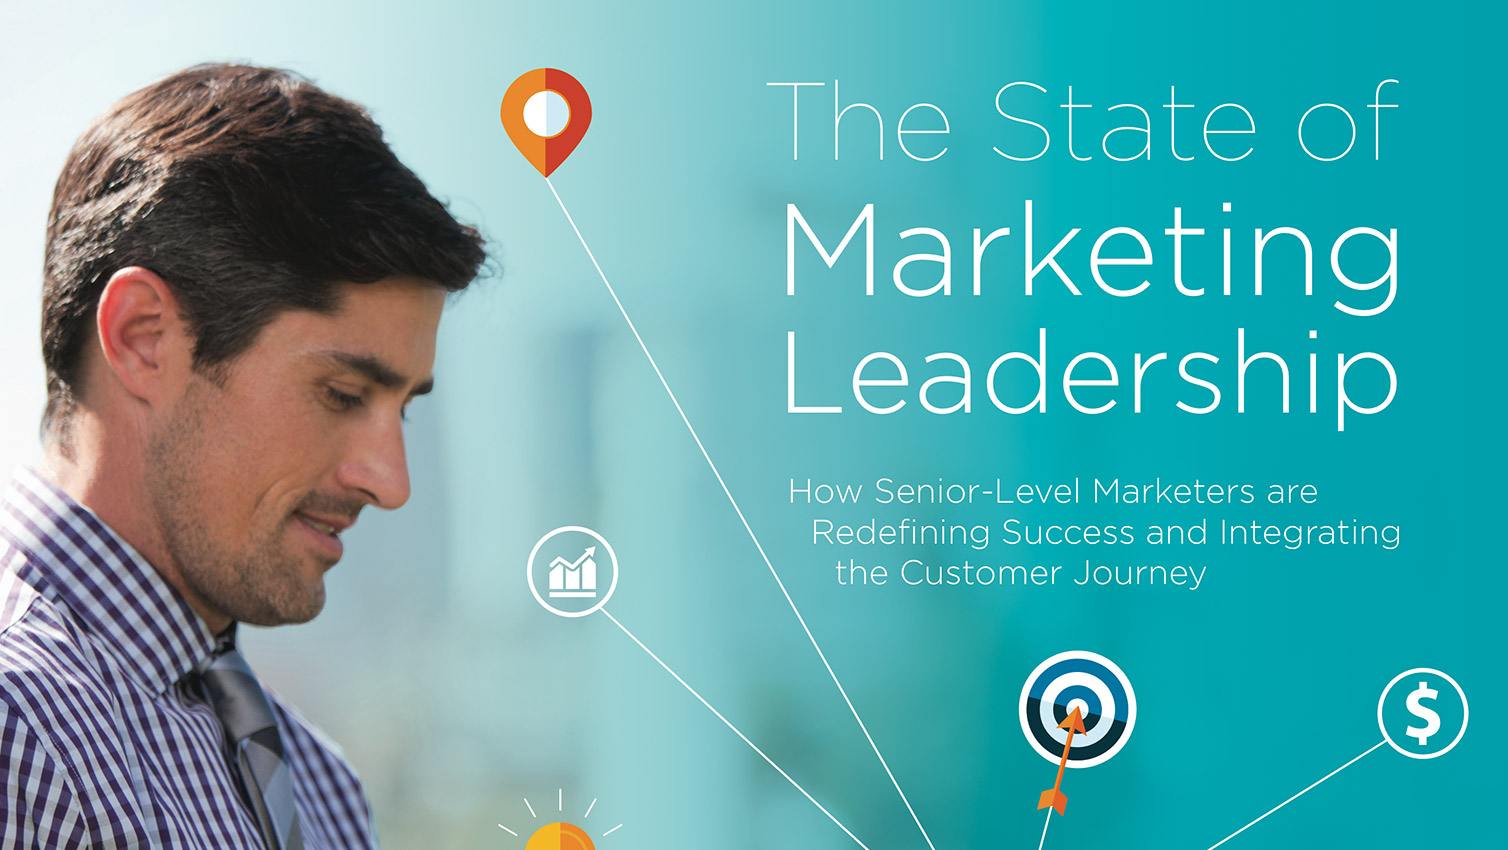 A New Report from Salesforce Marketing Cloud and LinkedIn: The State of Marketing Leadership